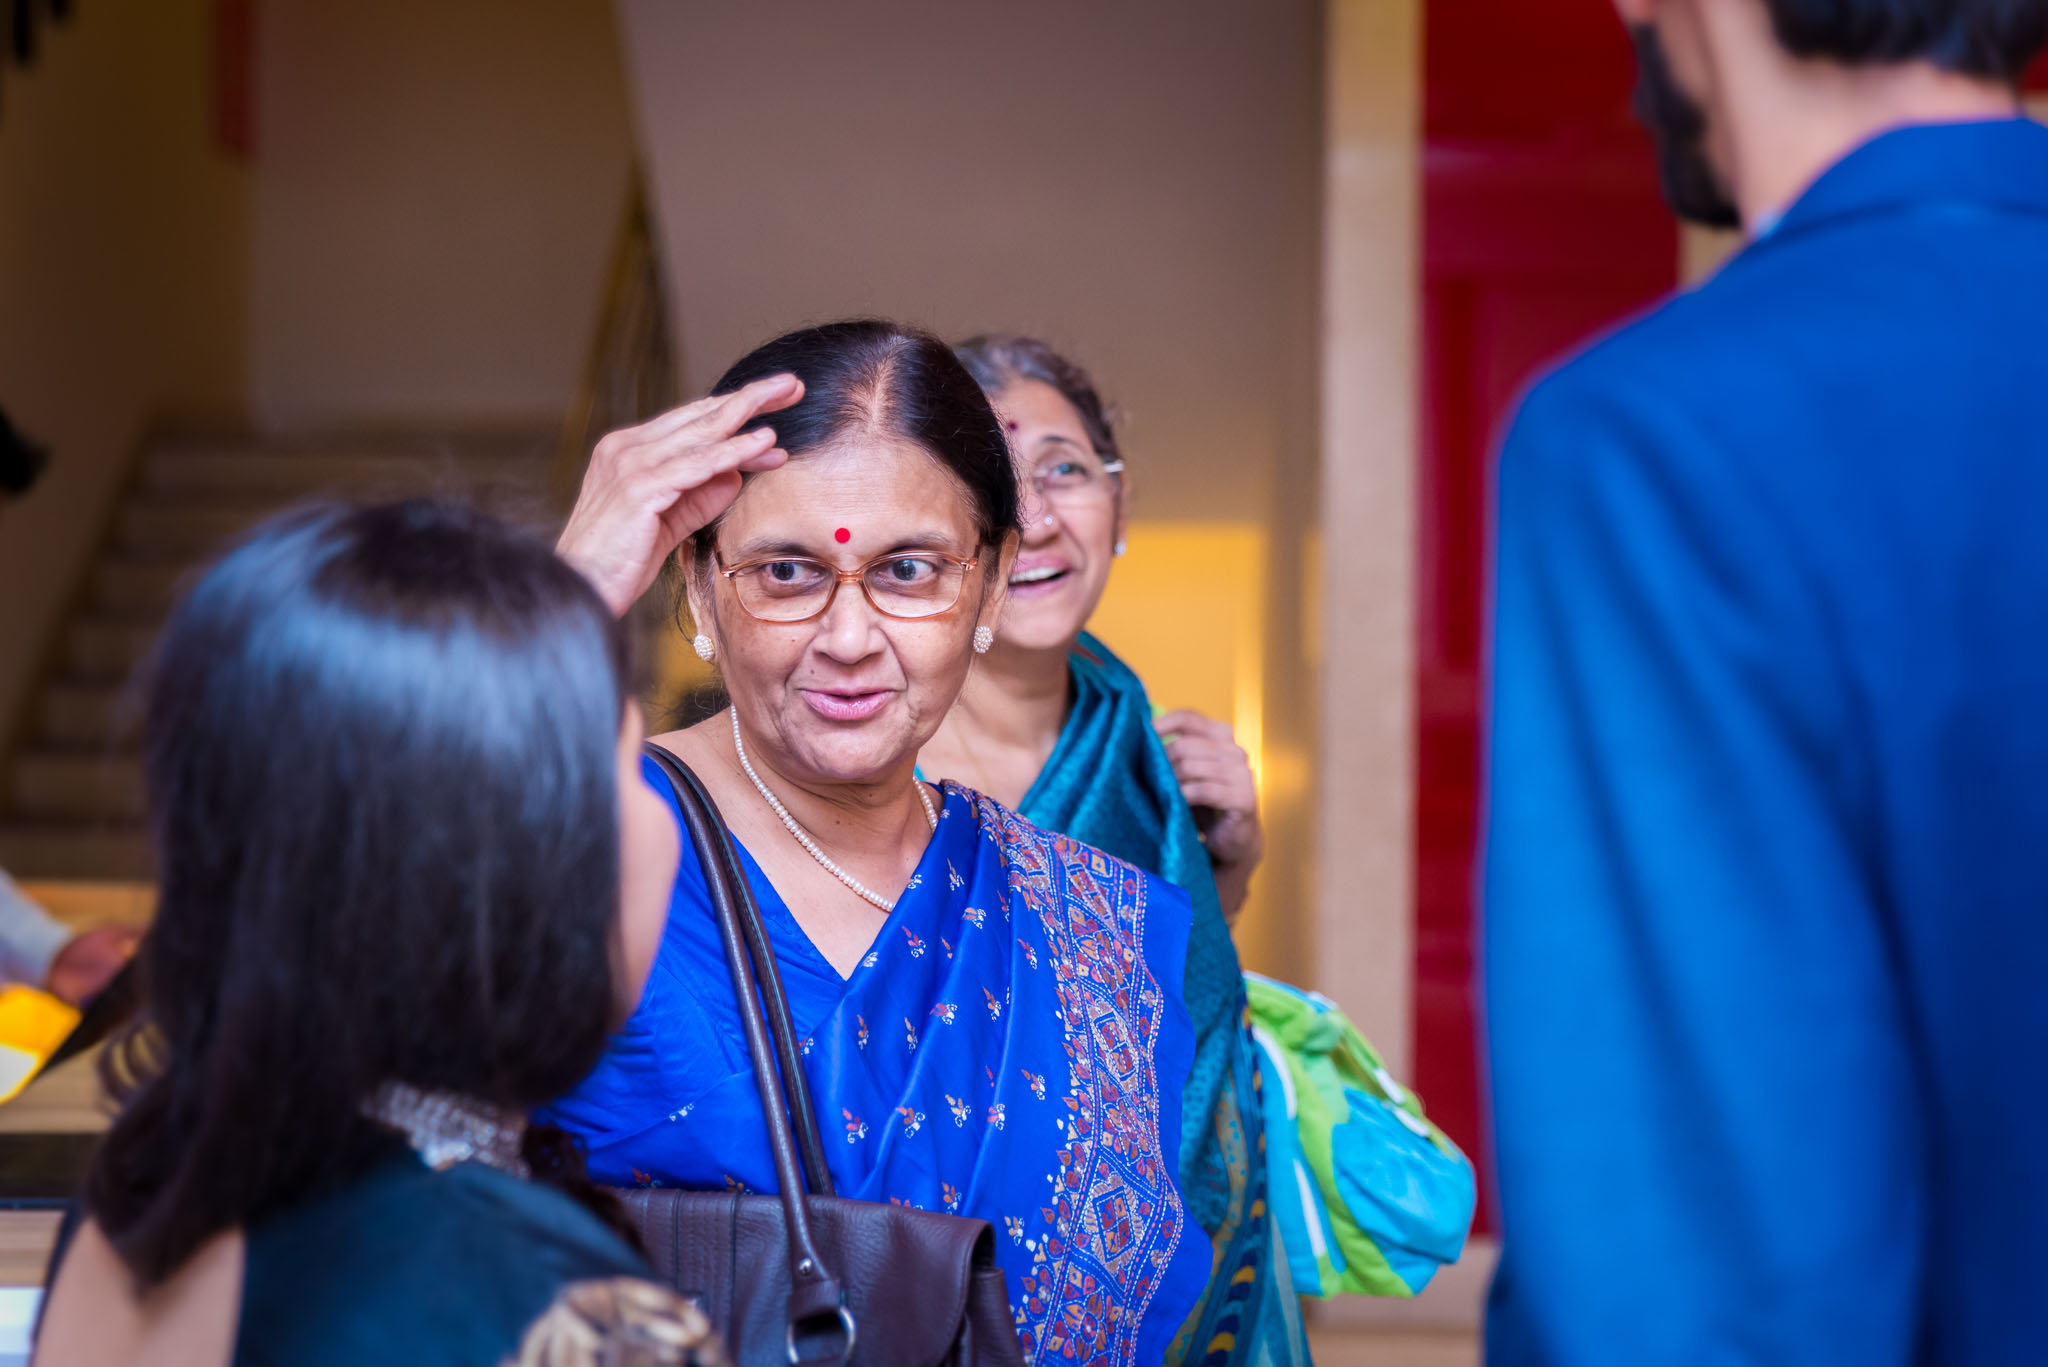 WhatKnot-Candid-Wedding-Photography-Mumbai-Bangalore-3